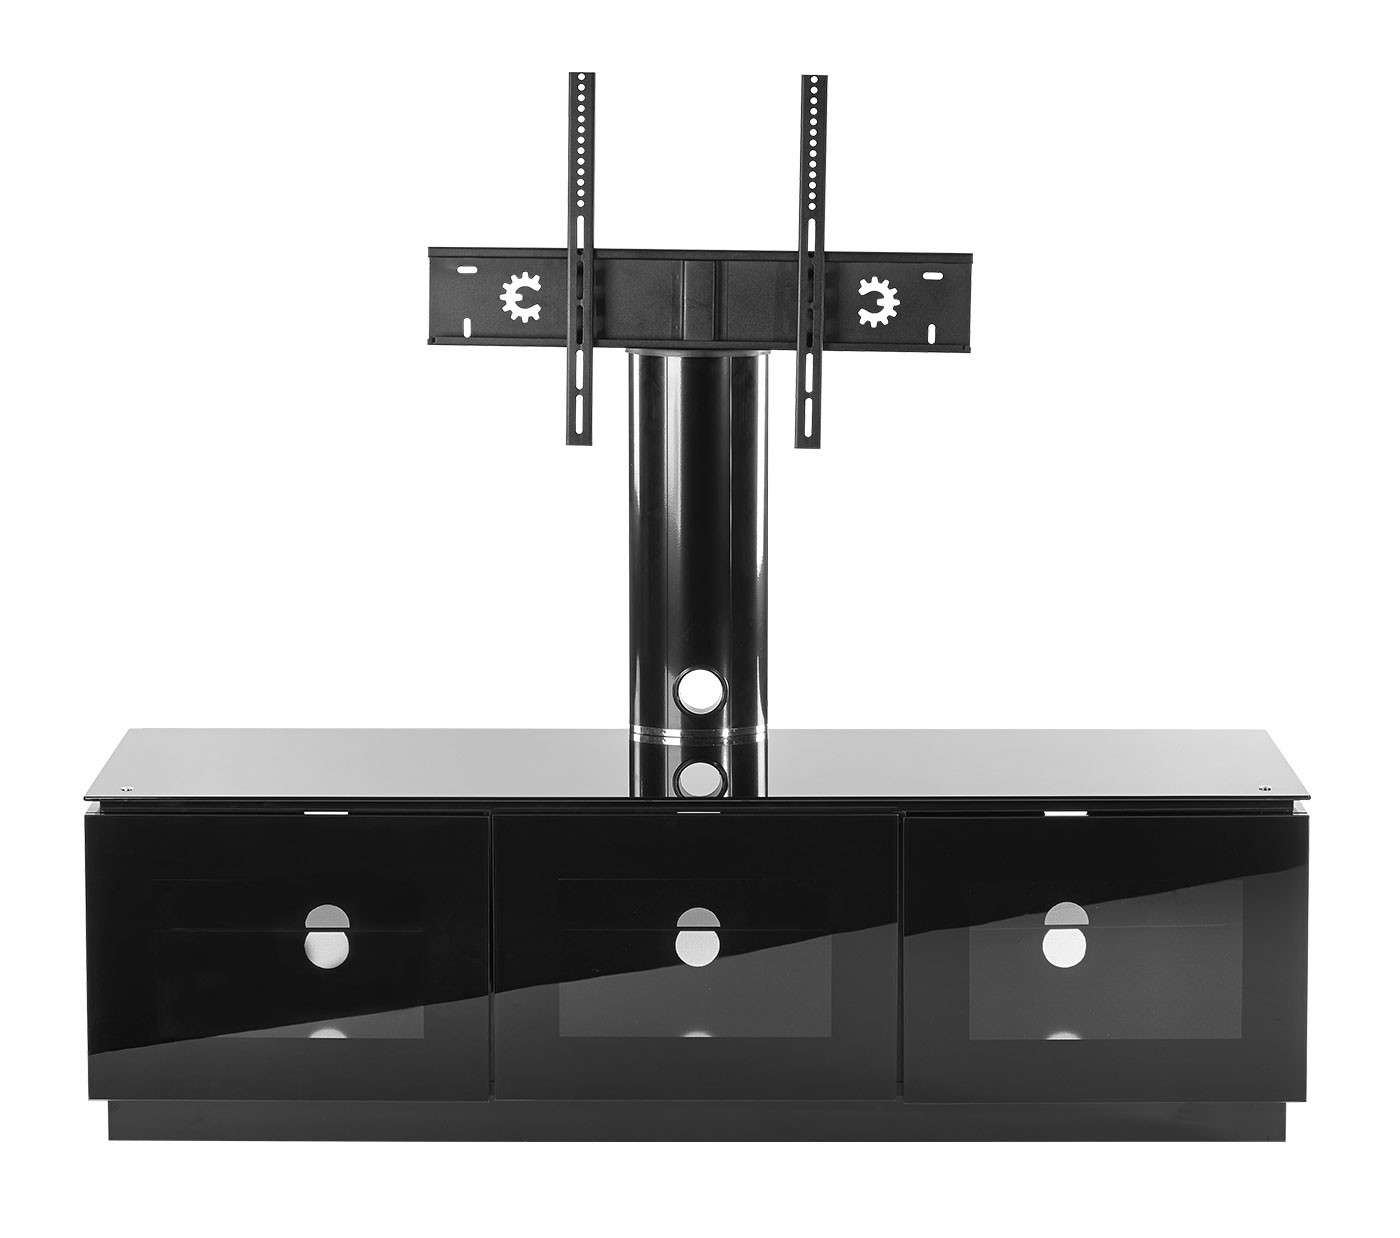 Black Tv Cabinet With Mount For Up To 65 Inch Tv | Mmt D1500 Xarm Intended For Black Gloss Tv Cabinets (View 18 of 20)